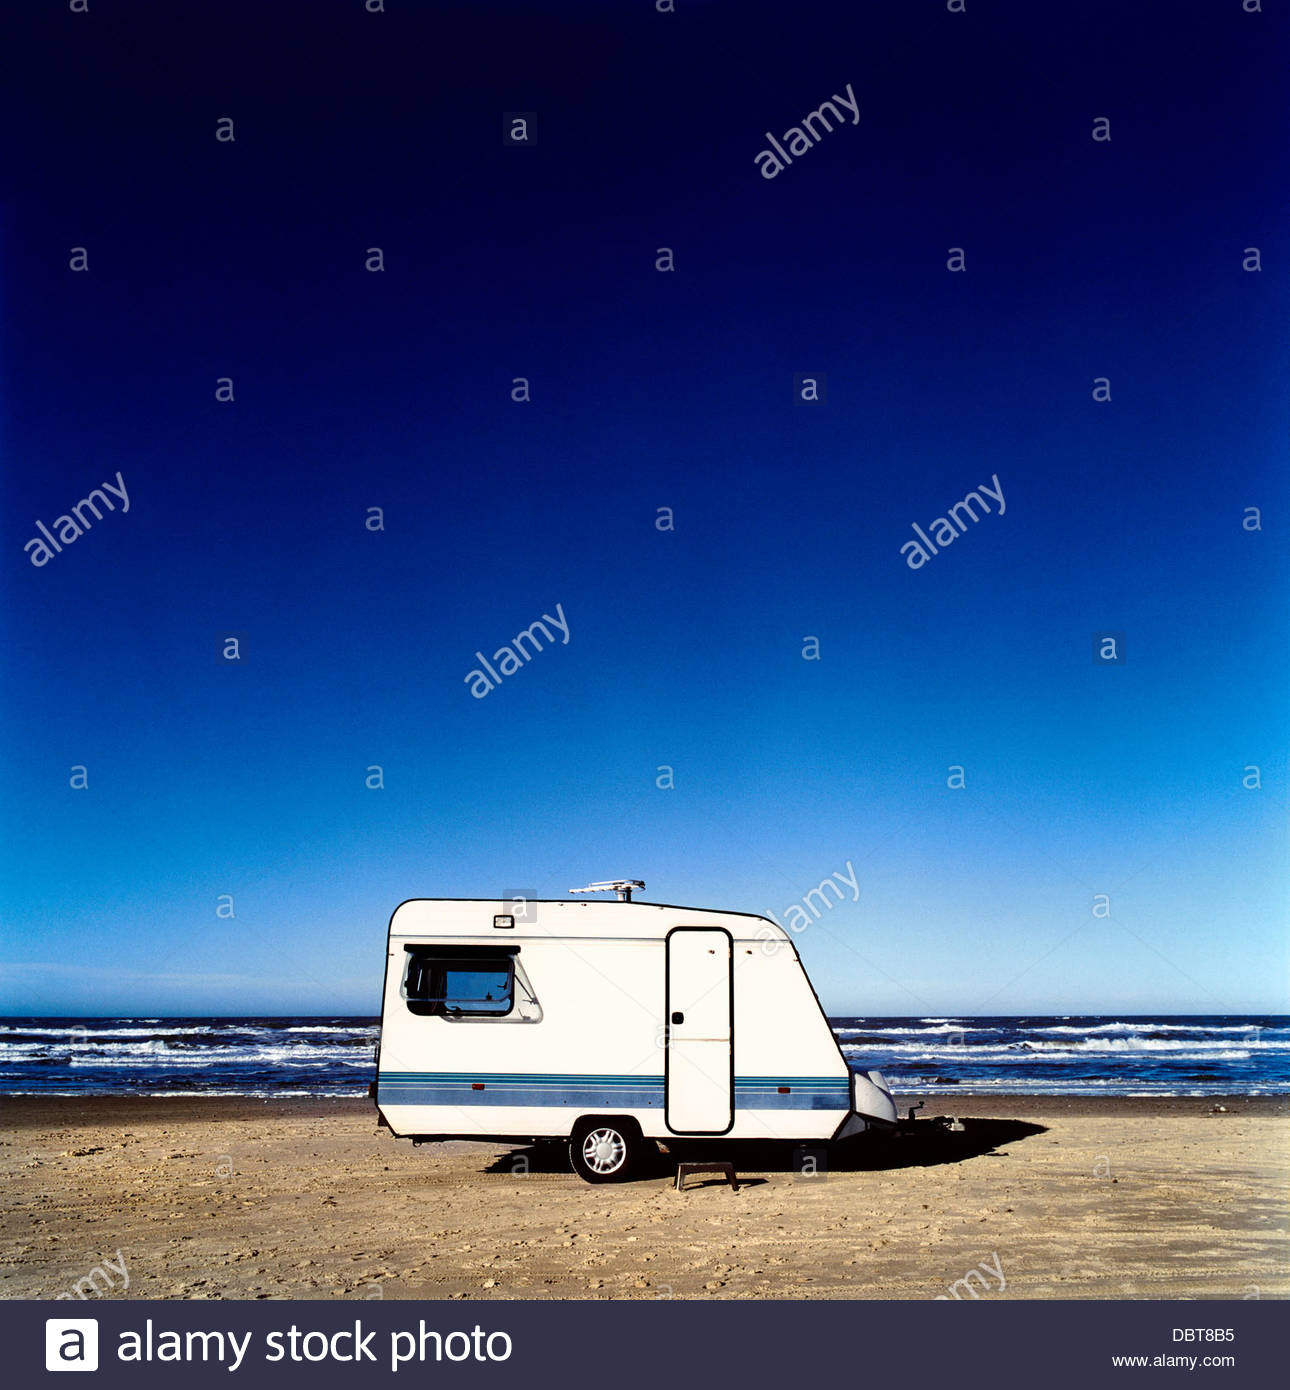 Caravan on beach against blue sky - Stock Image